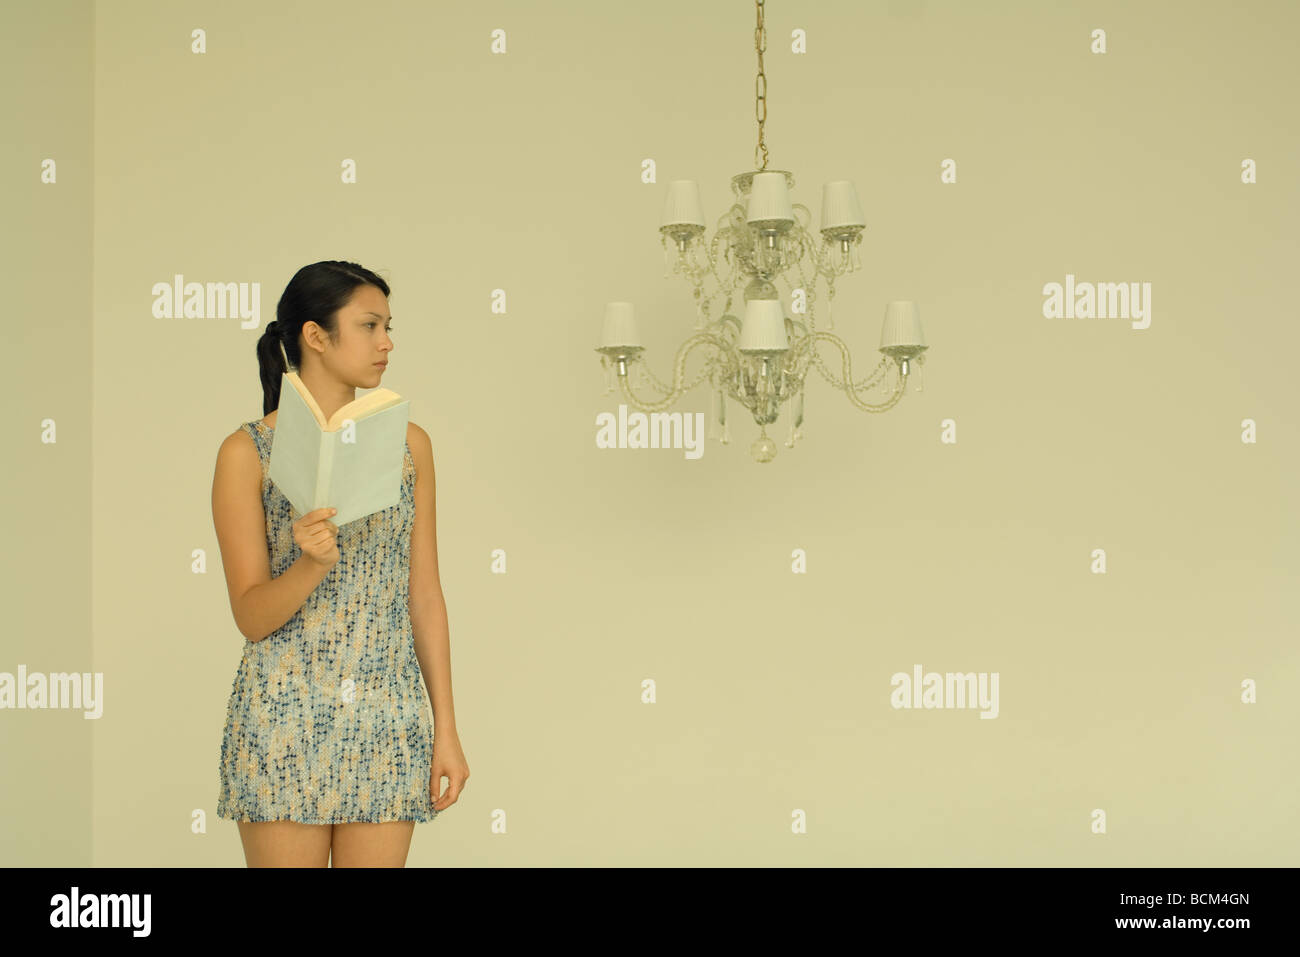 Woman holding book, frowning in direction of unlit chandelier - Stock Image